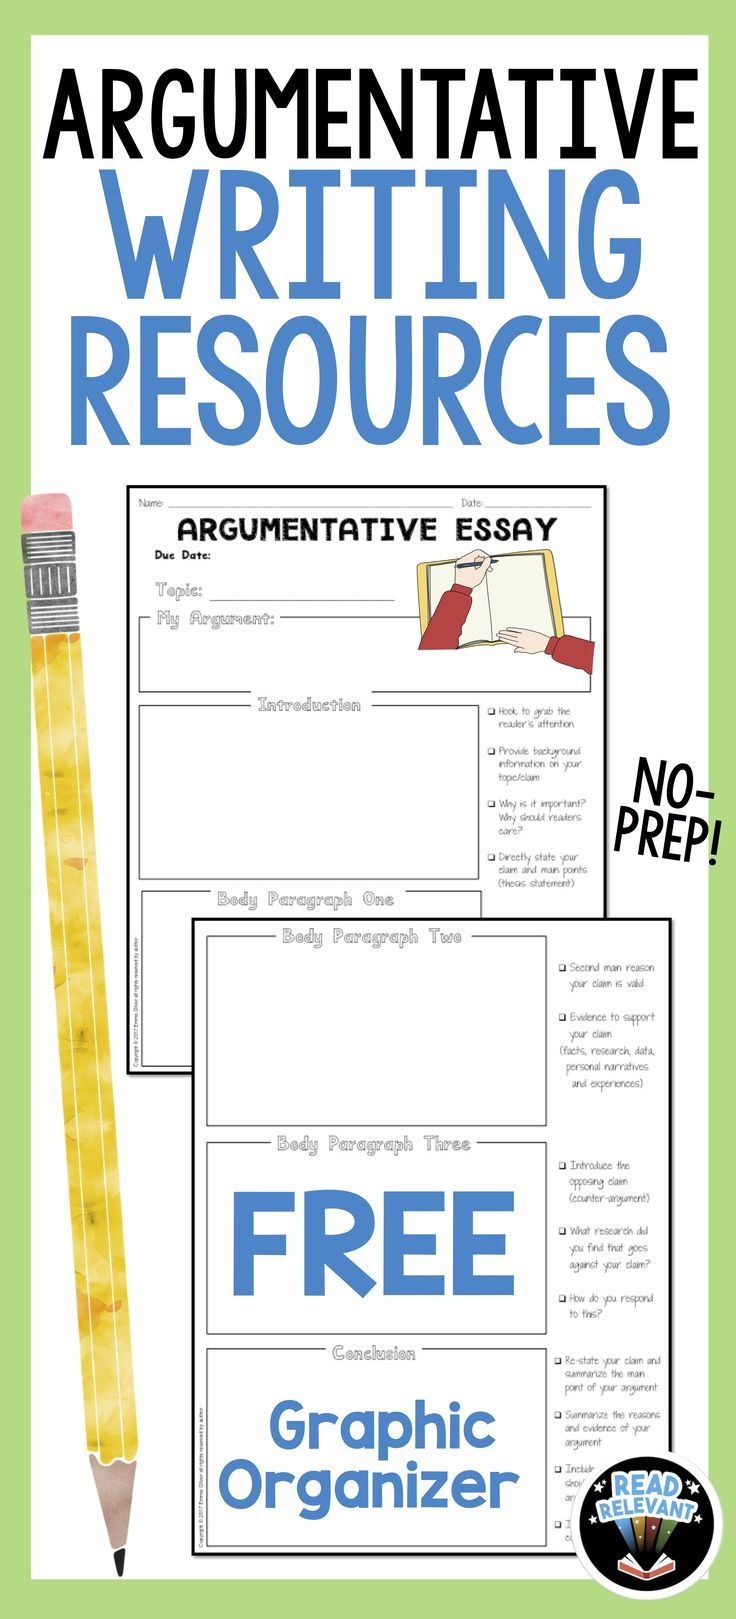 Click to get a free graphic organizer with writing checklist for planning and pre-writing of argumentative or persuasive essays!